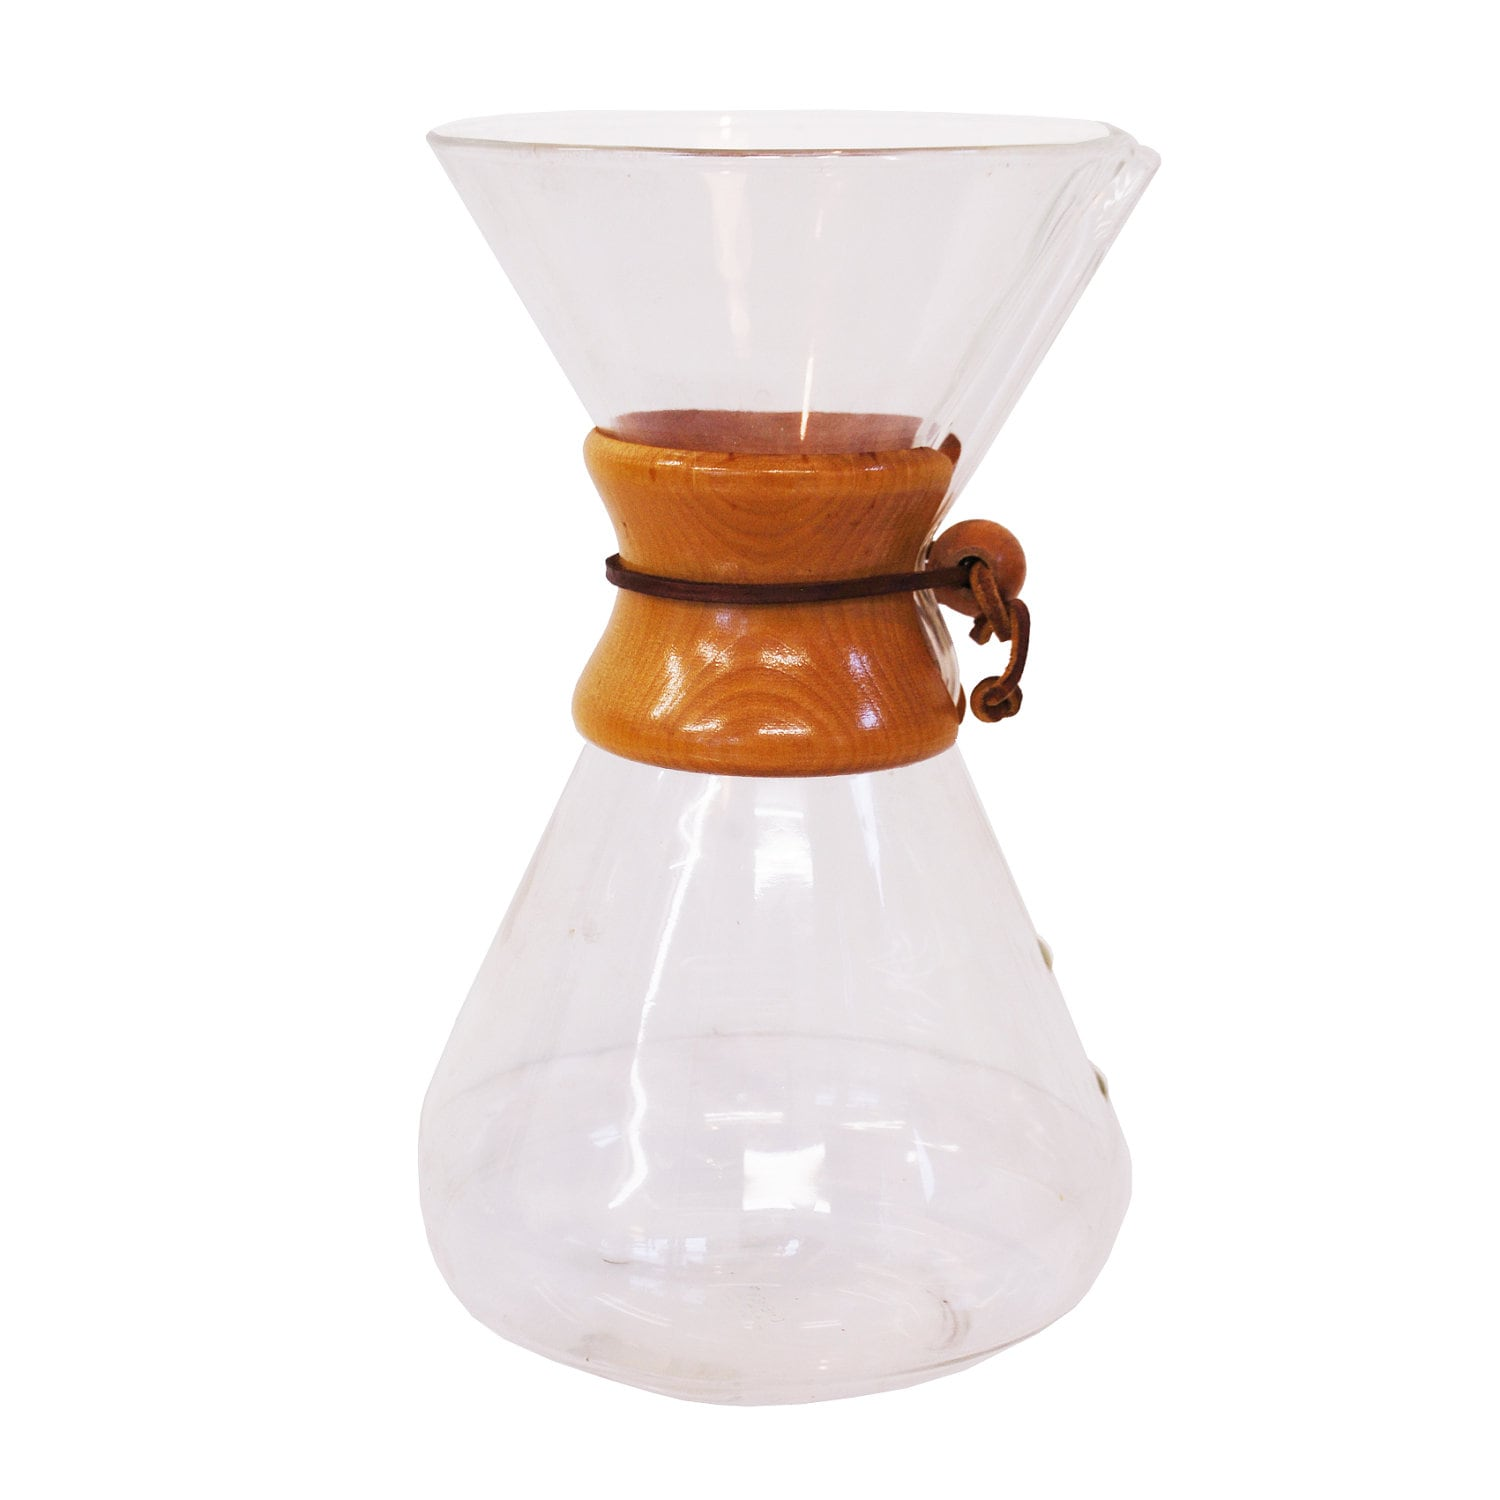 Chemex Carafe / Large Glass Coffee Maker / by midmoderngoods